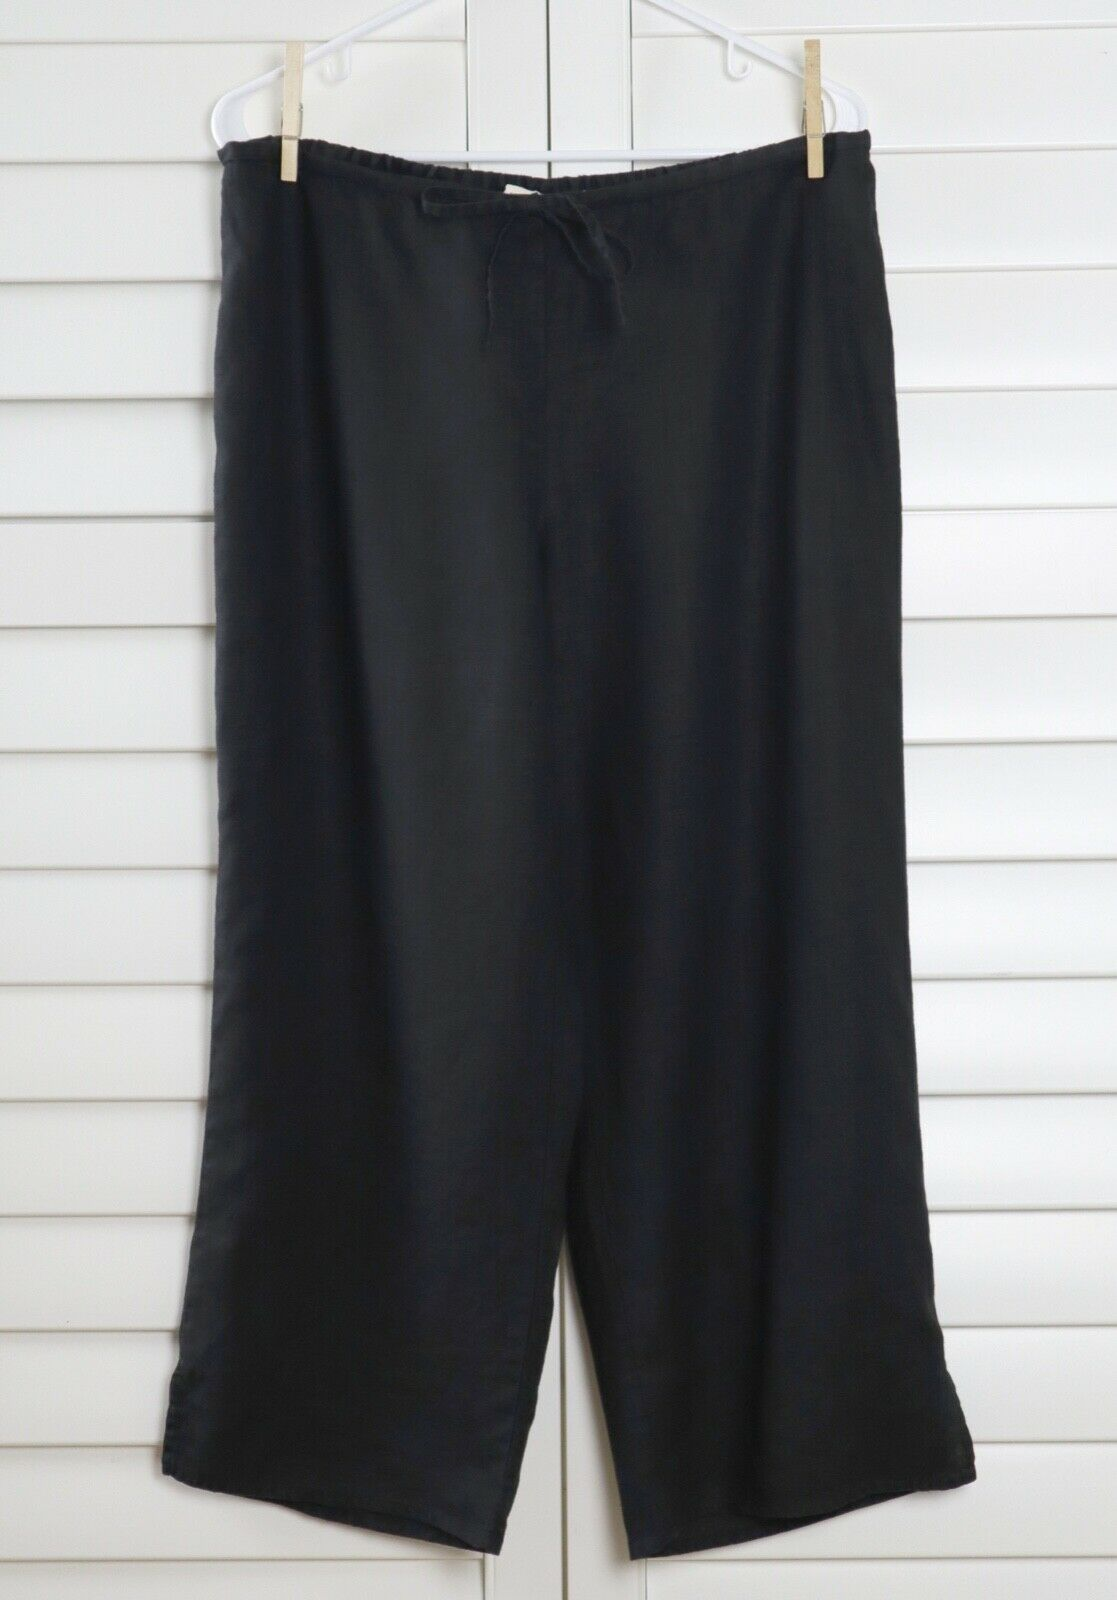 EILEEN FISHER  148 100% Irish Linen 1 2 Elastic Drawstring Crop Pants Größe Small